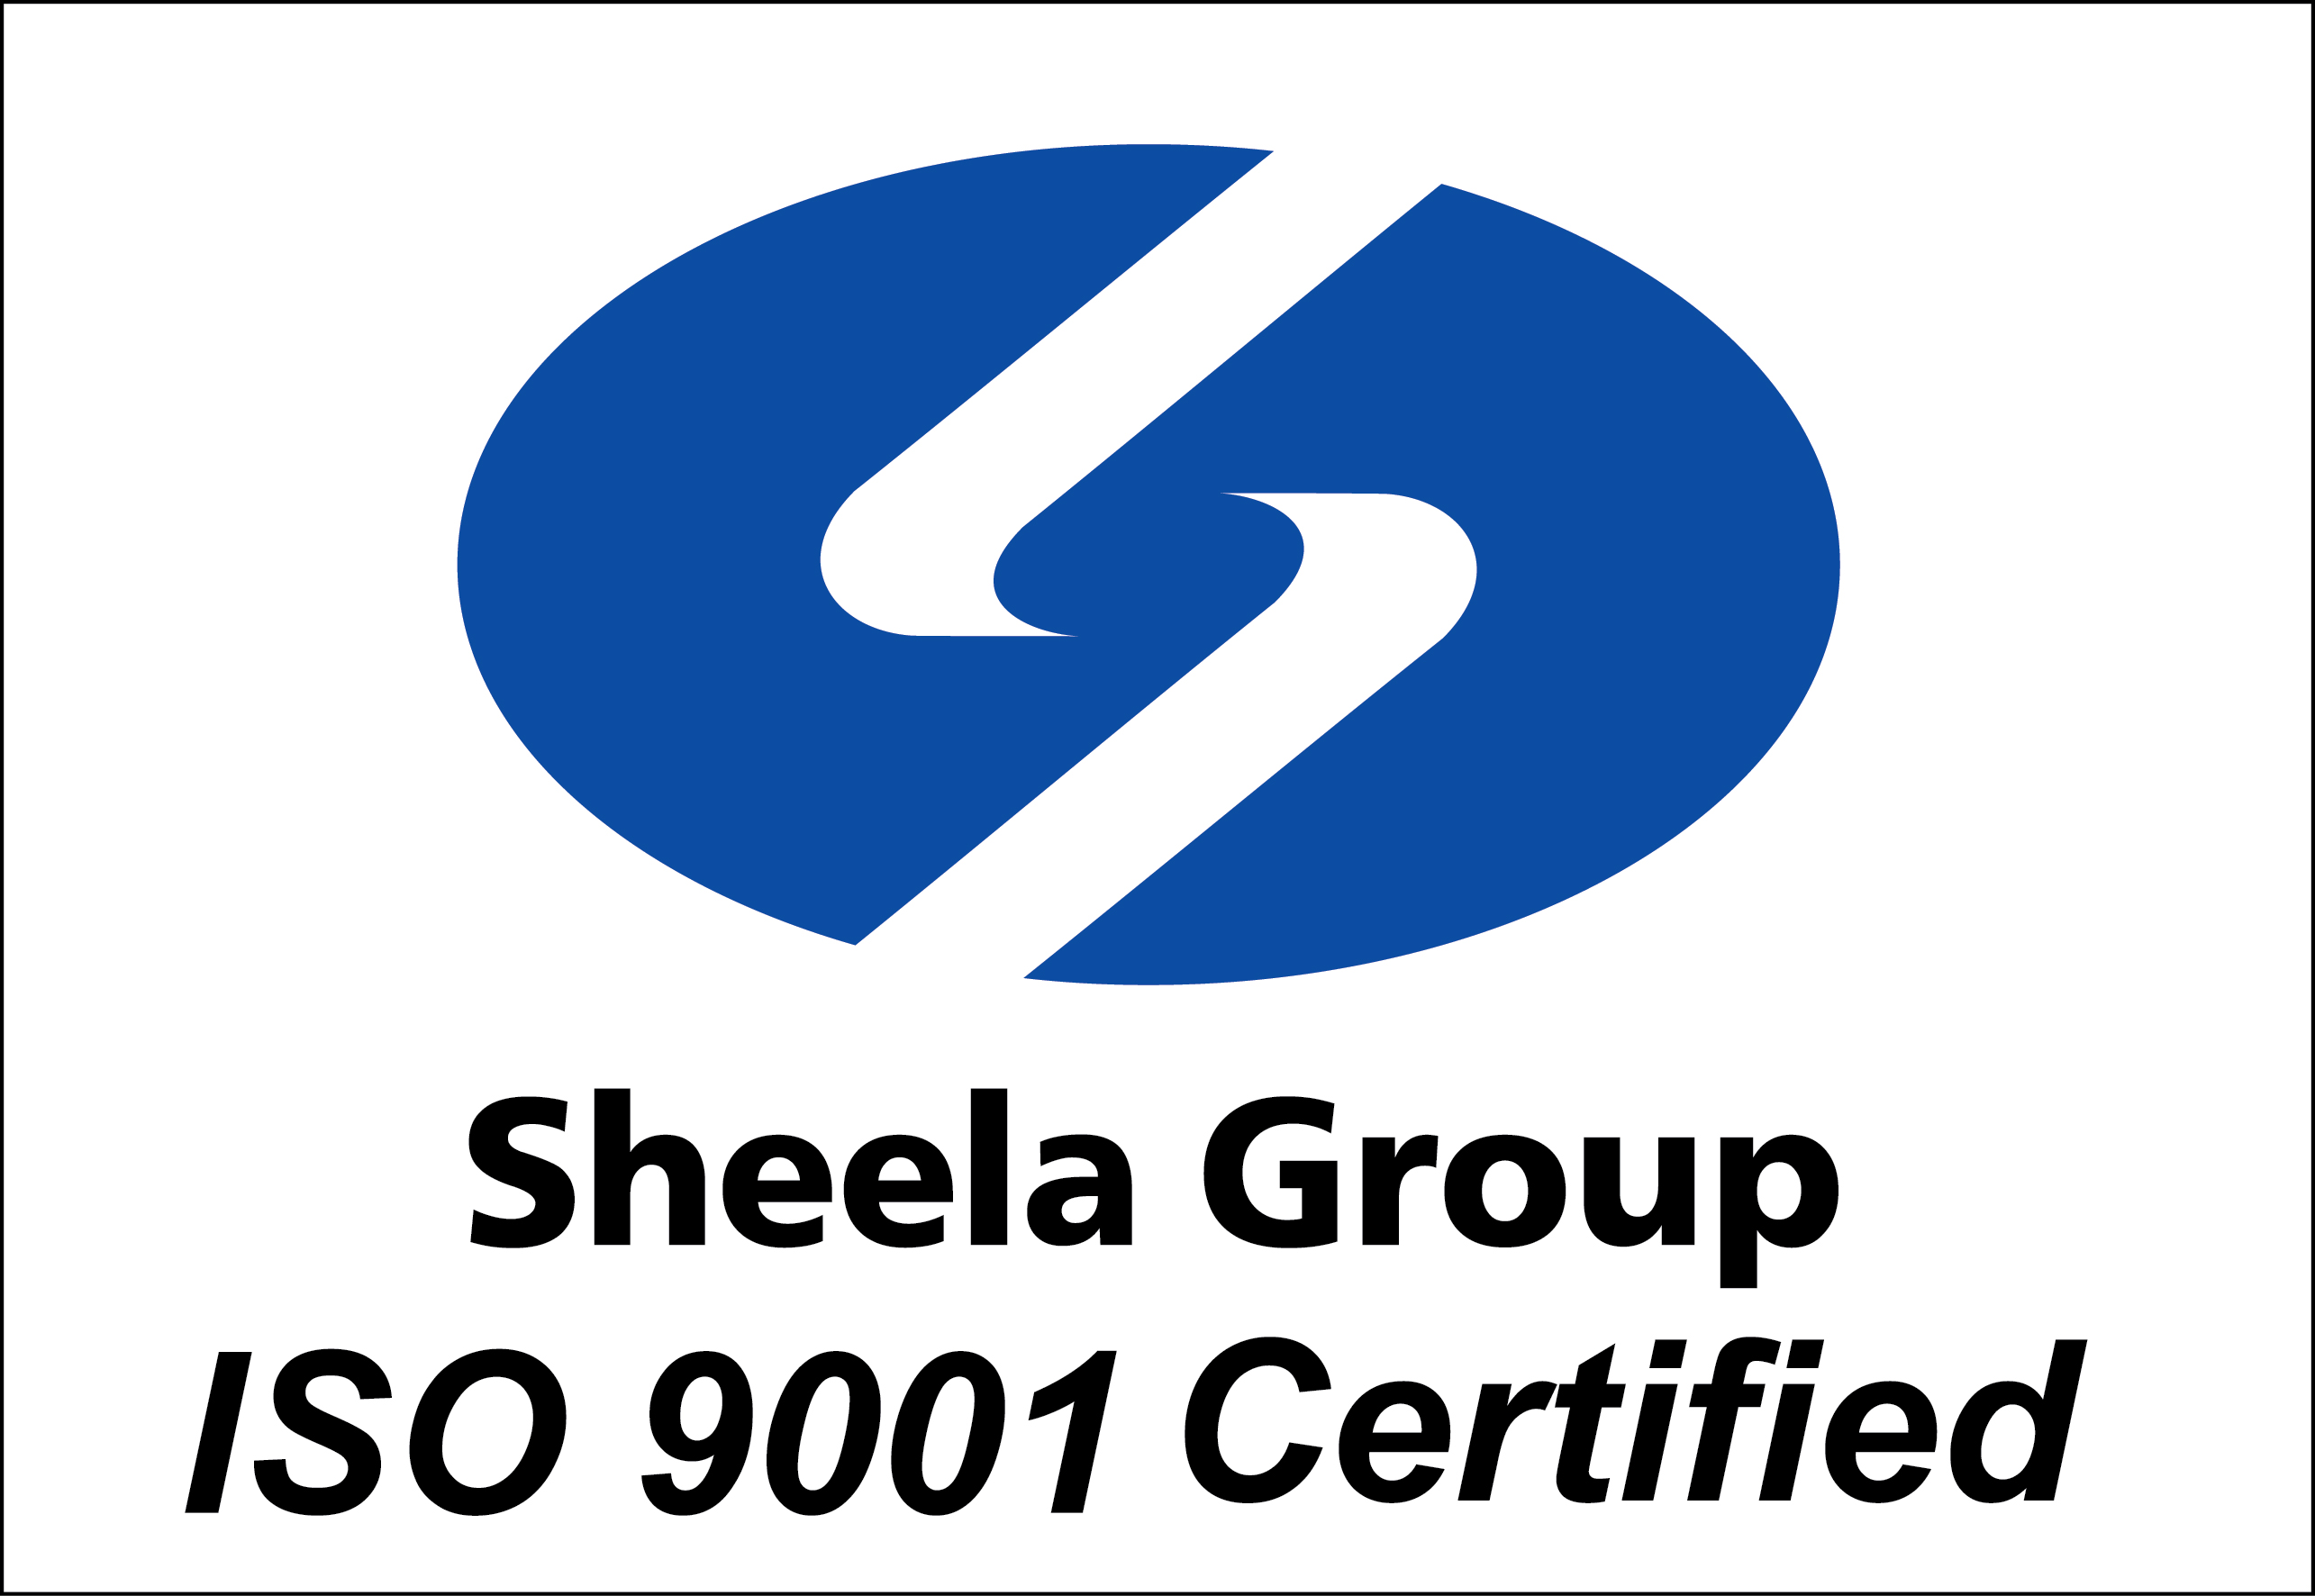 Welcome to Sheela Group - Leaders in PU Foam